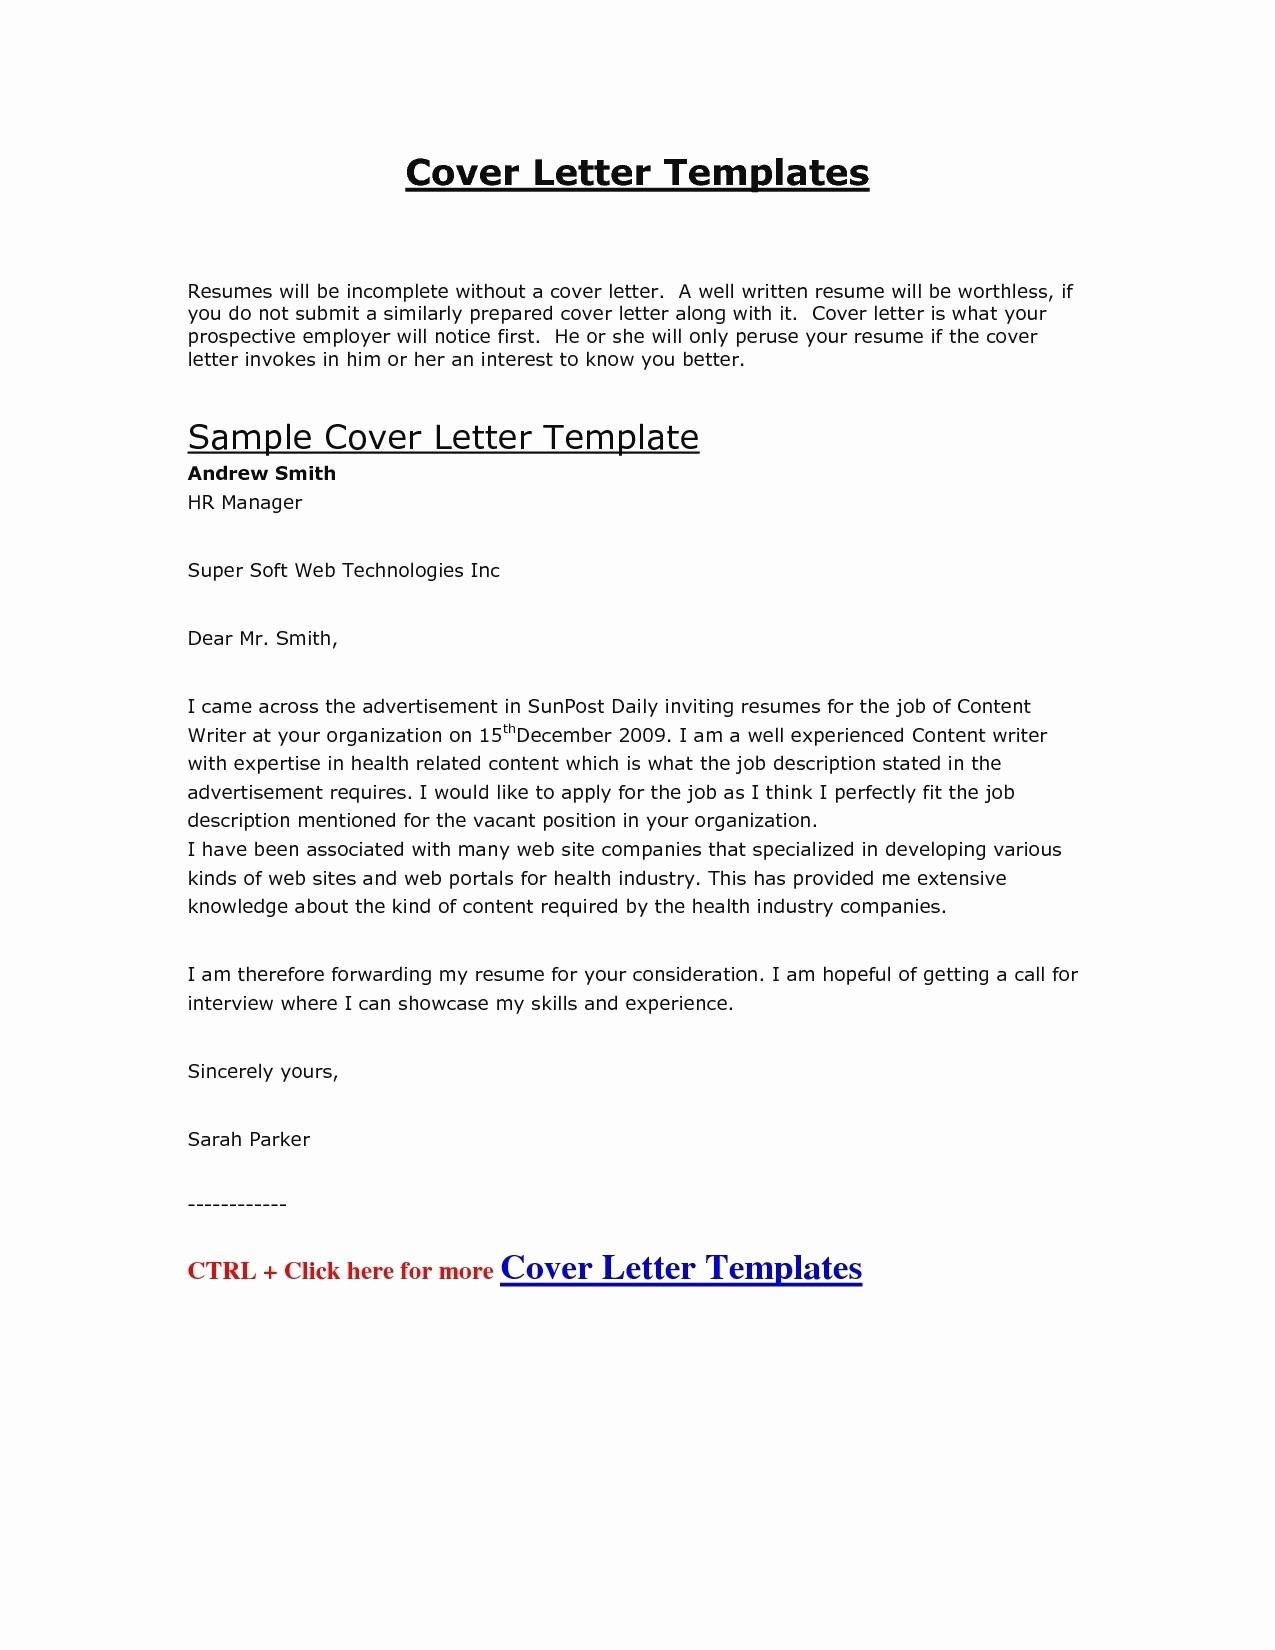 Legal Letter format Template - Job Application Letter format Template Copy Cover Letter Template Hr